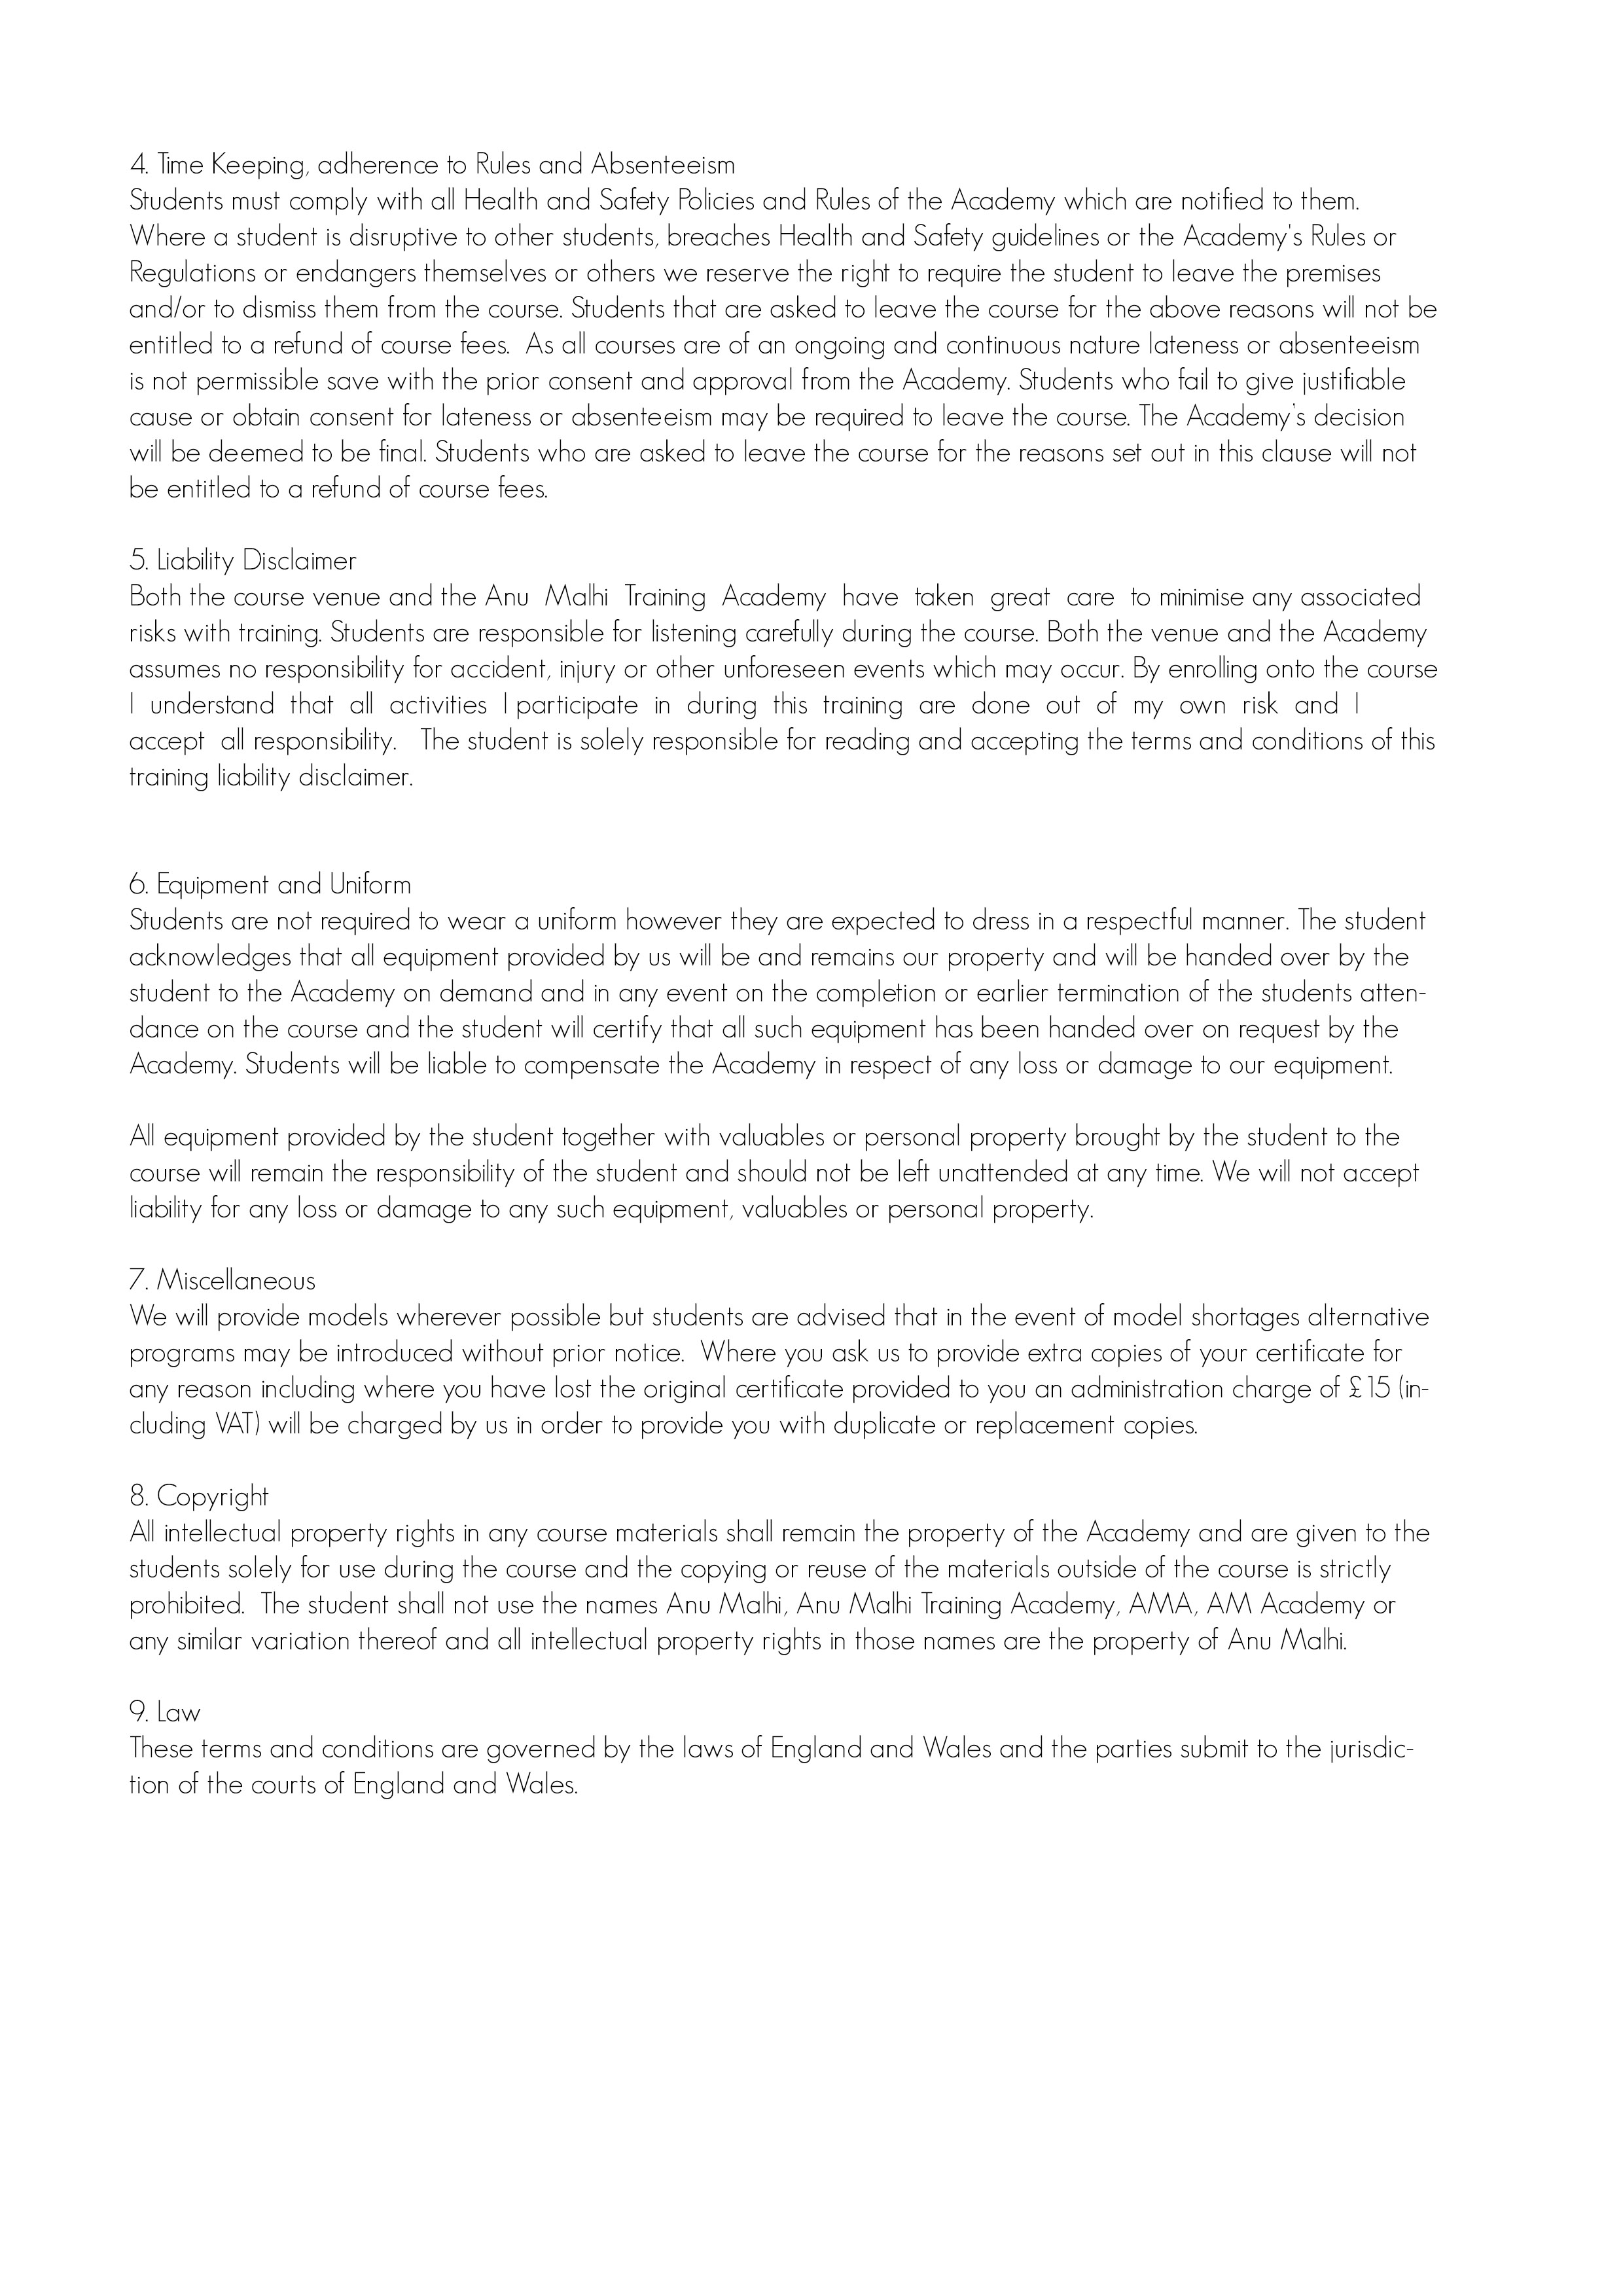 Terms & Conditions (page 2 of 2)